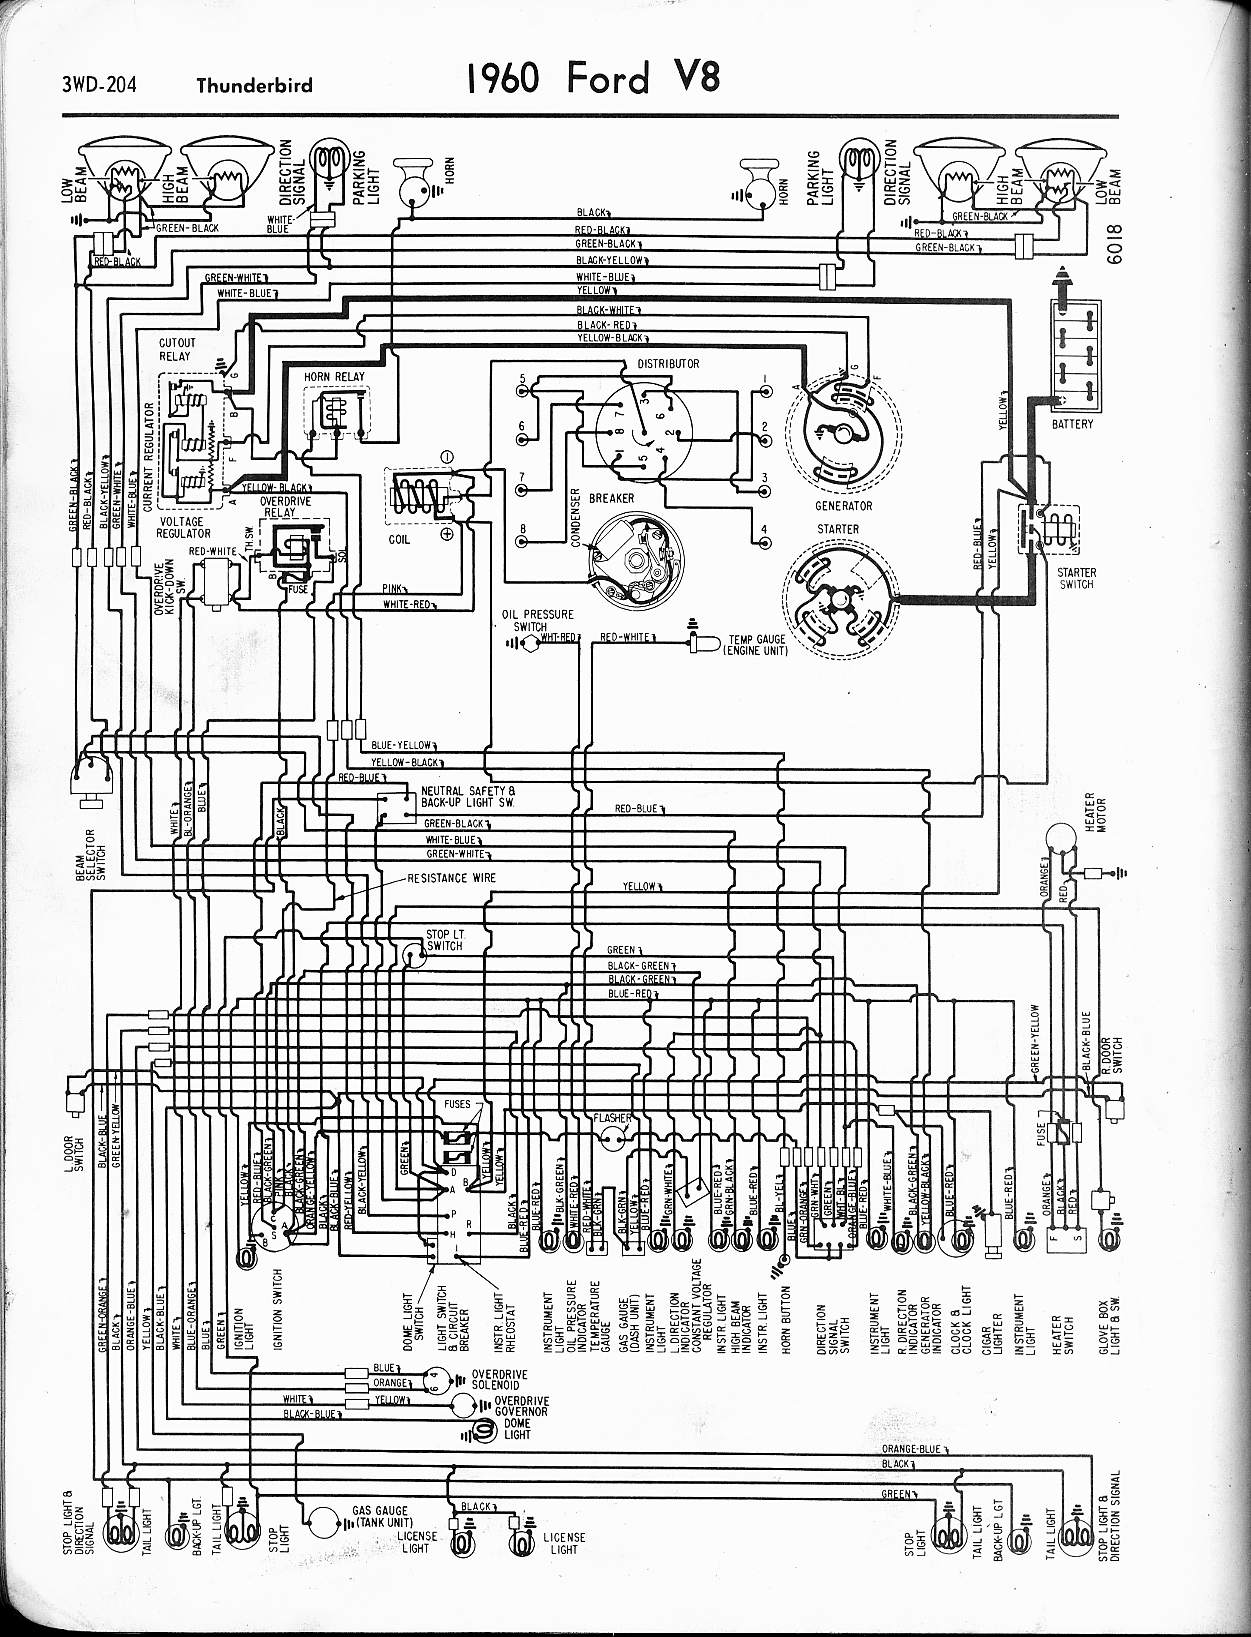 57 65 Ford Wiring Diagrams Basic Ignition Diagram 300 Internation 1960 Thunderbird